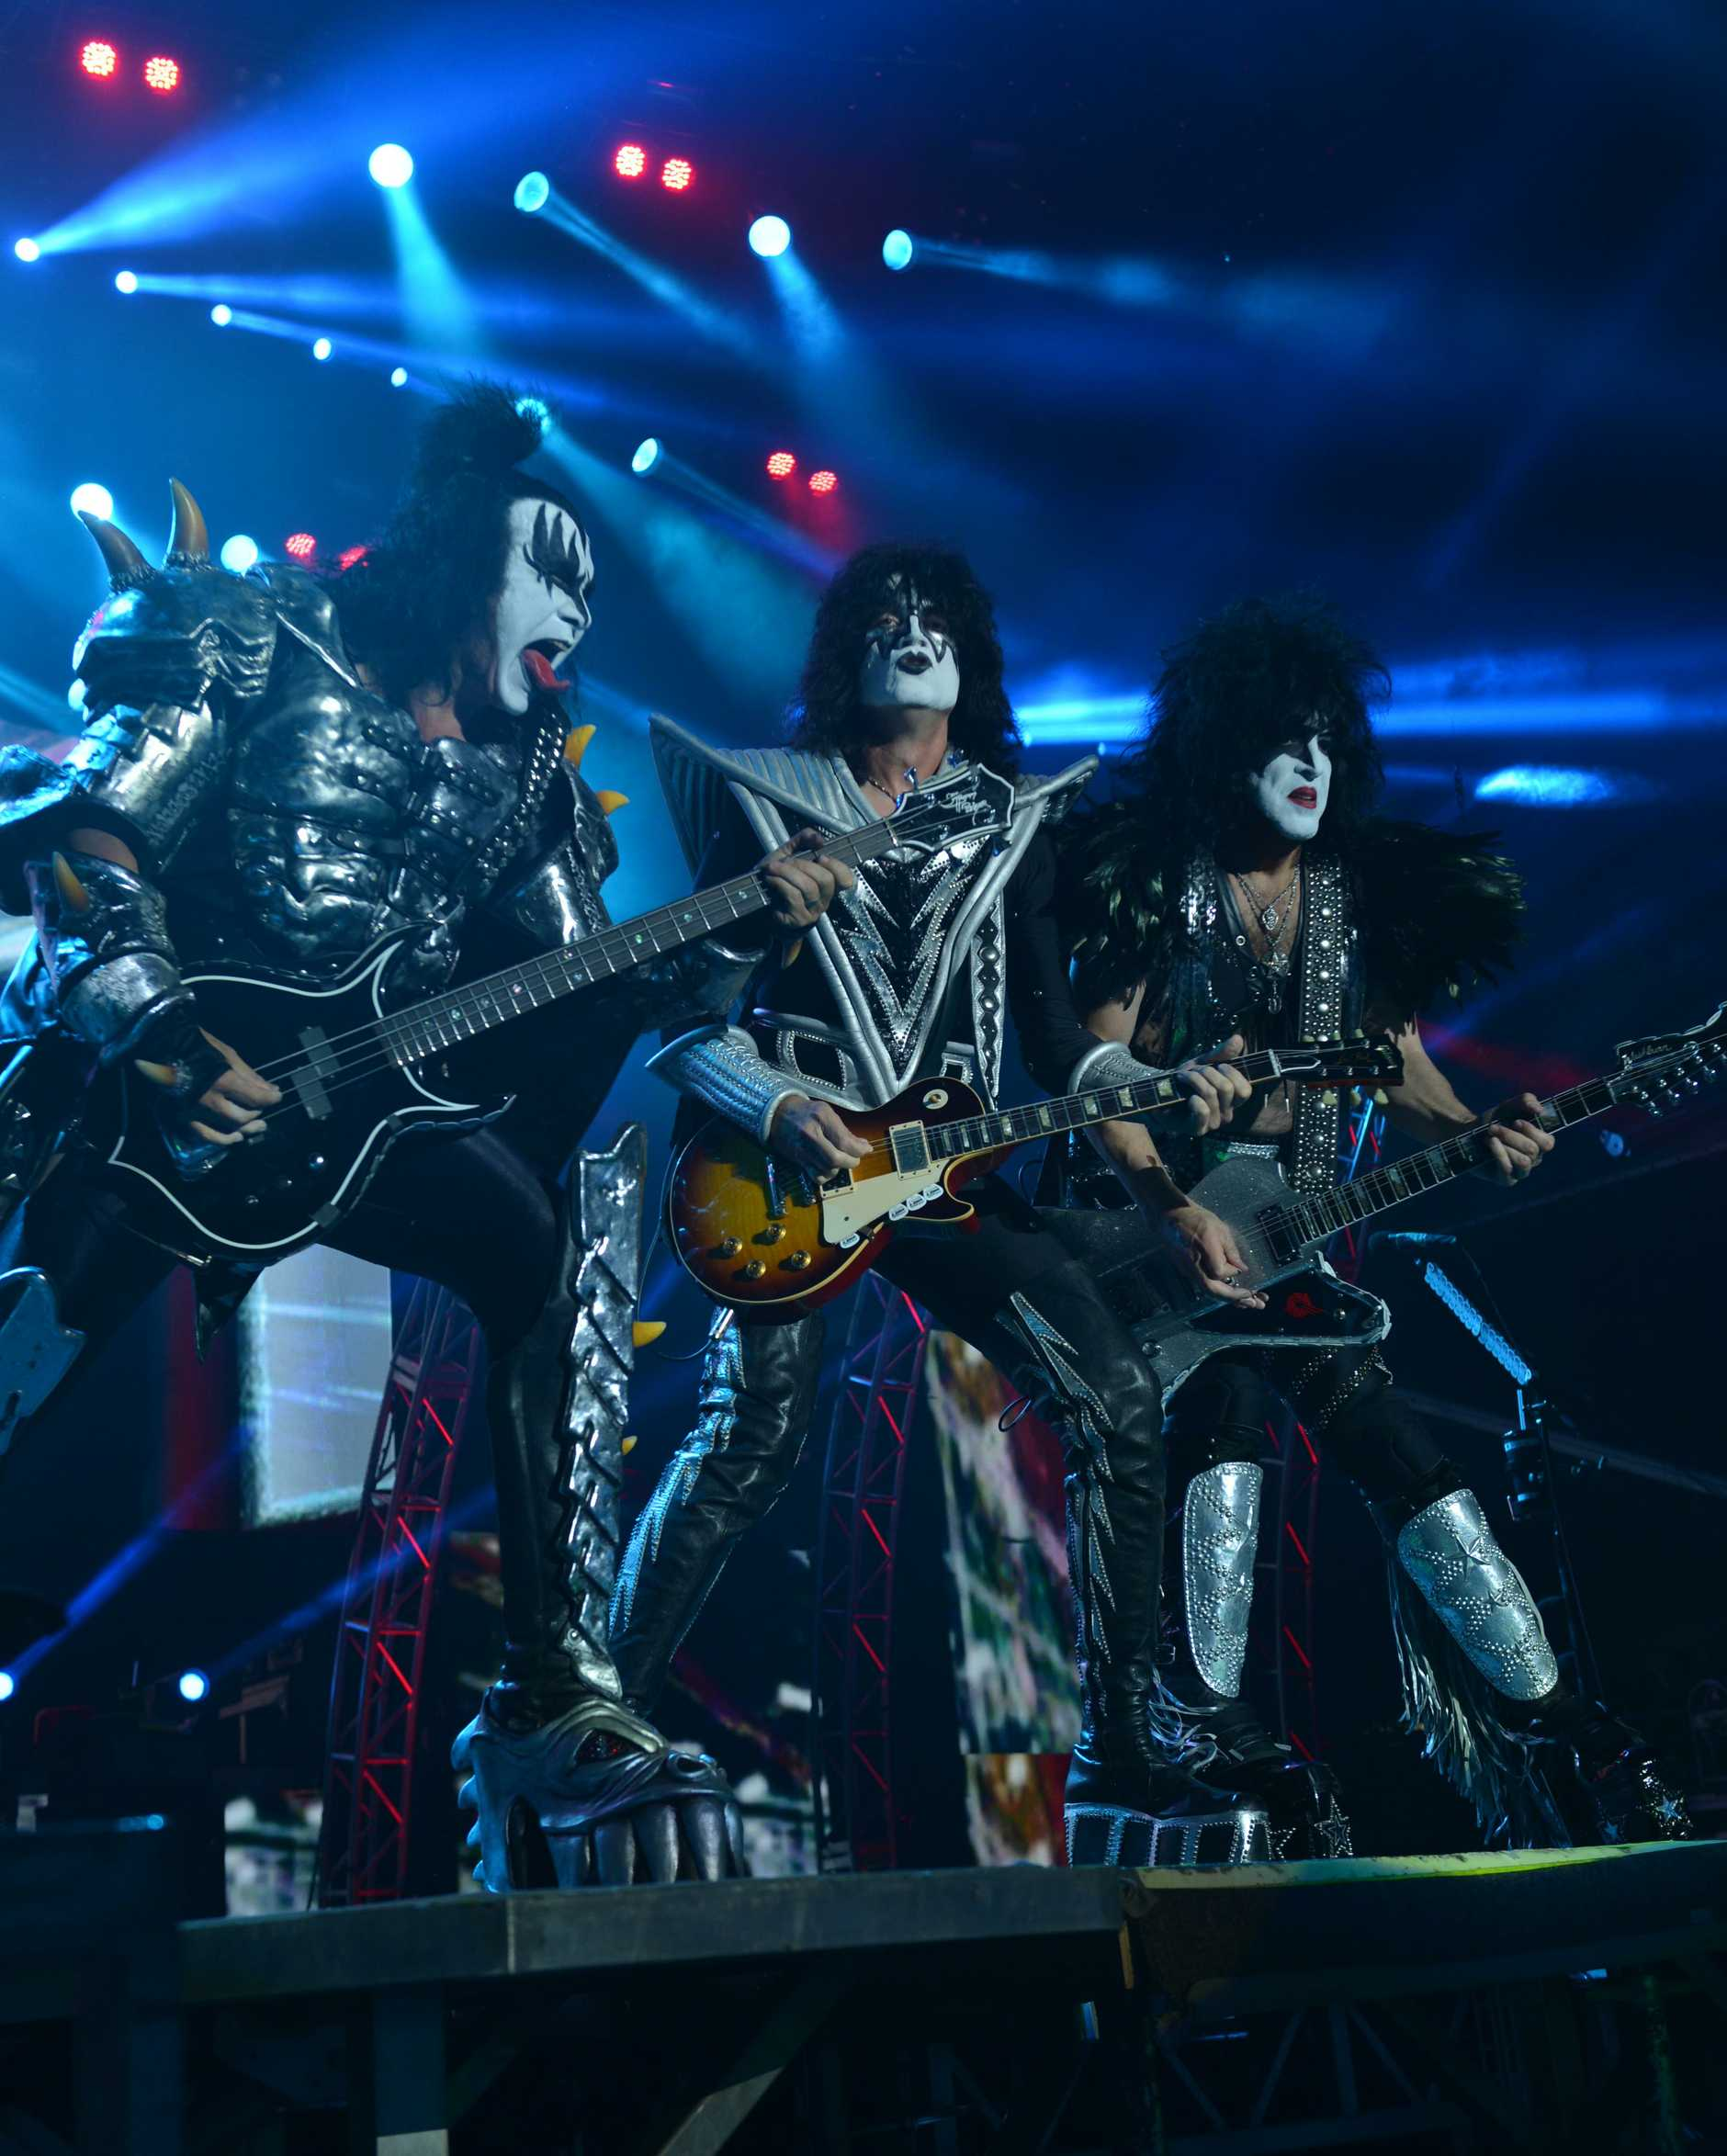 Kiss rocked the socks off fans at Mackay concert.